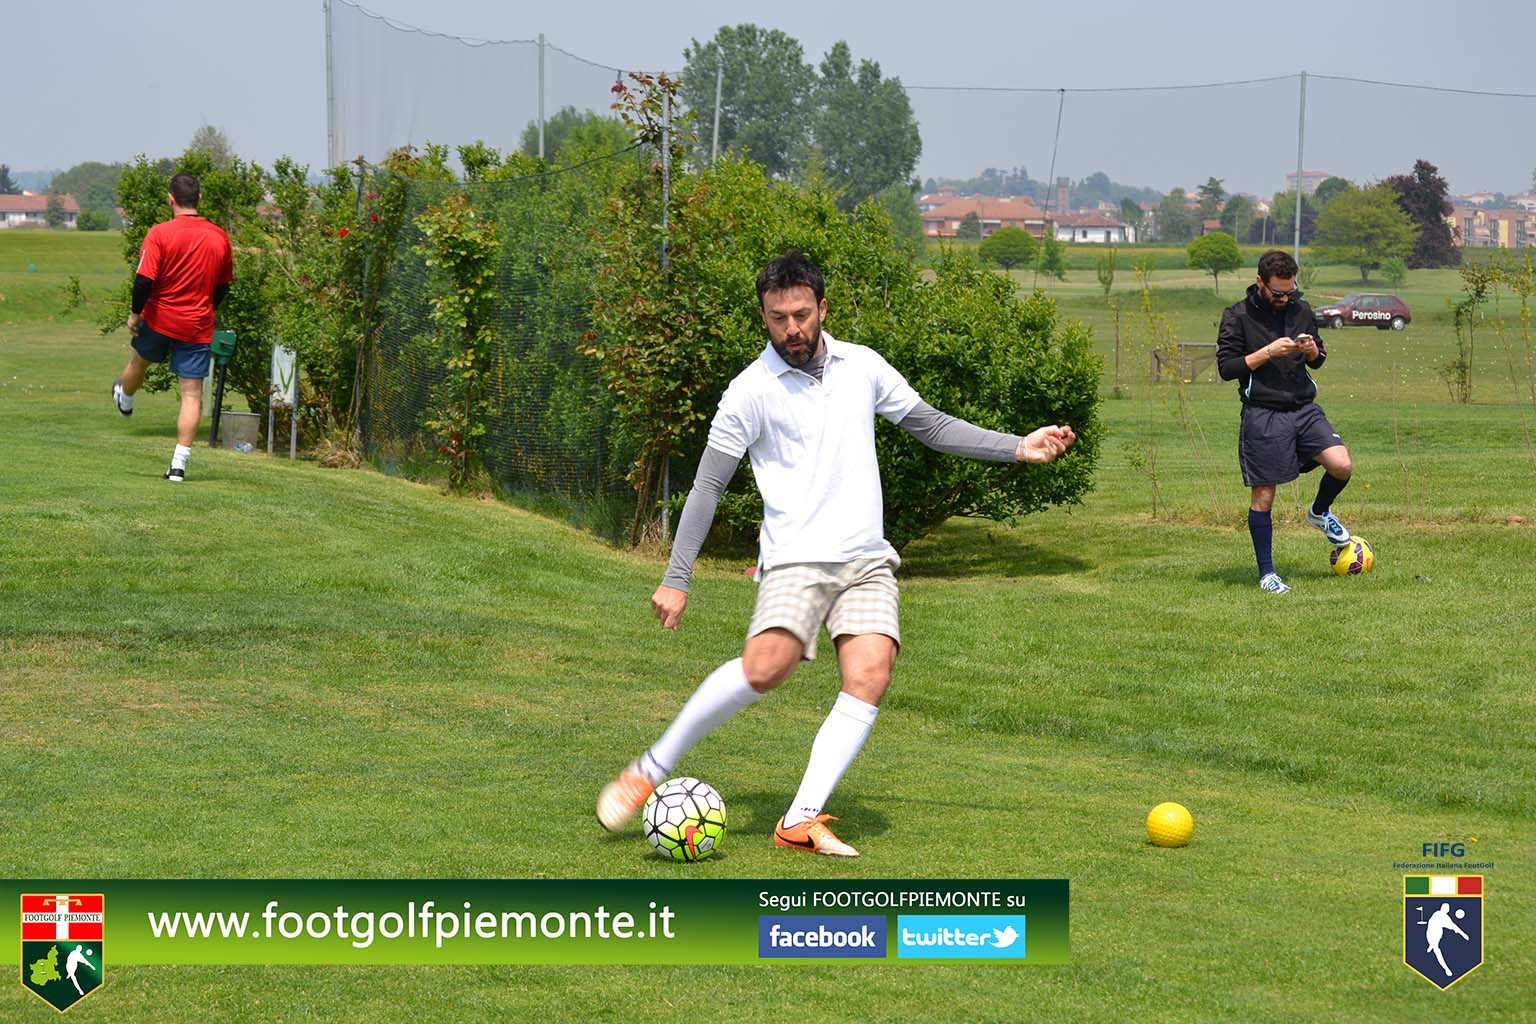 FOTO 9 Regions' Cup Footgolf Piemonte 2016 Golf Città di Asti (At) 30apr16-44